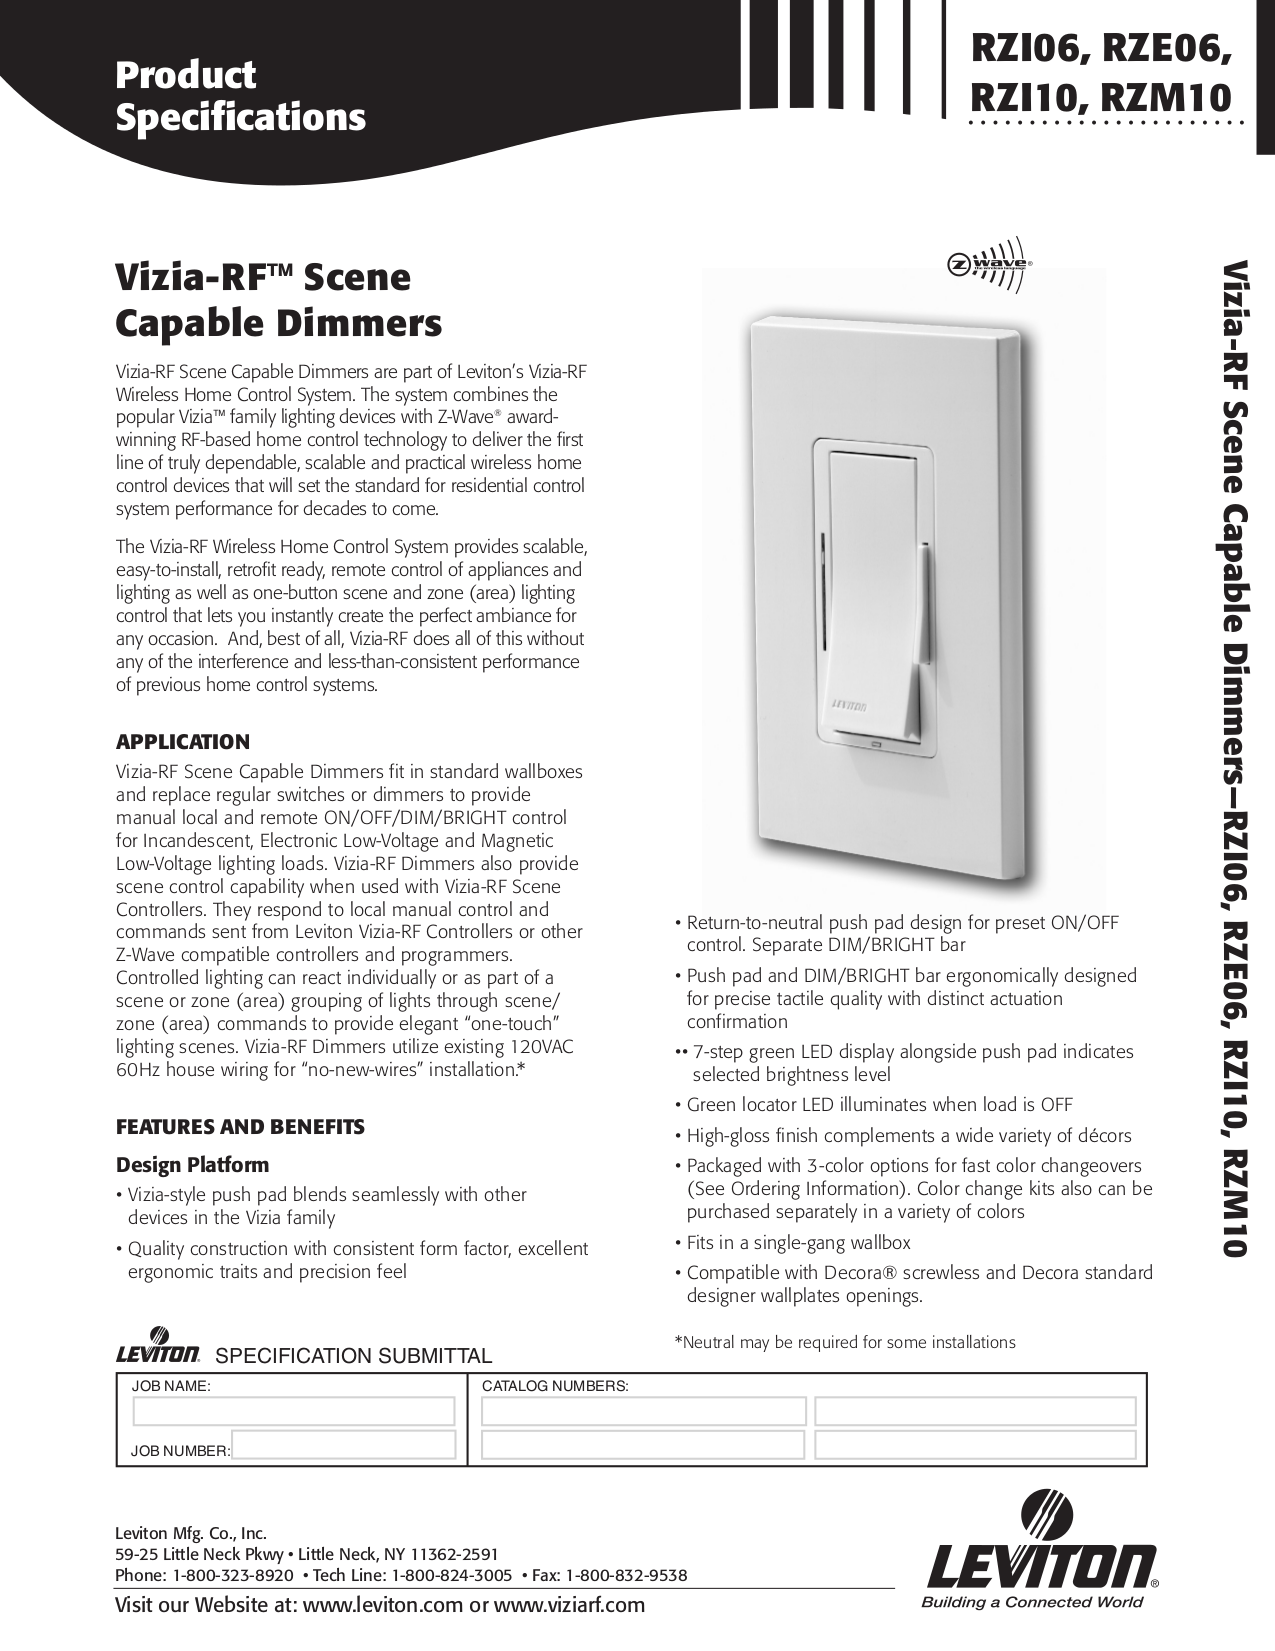 Download free pdf for Leviton RZI10-1L Dimmers Other manual